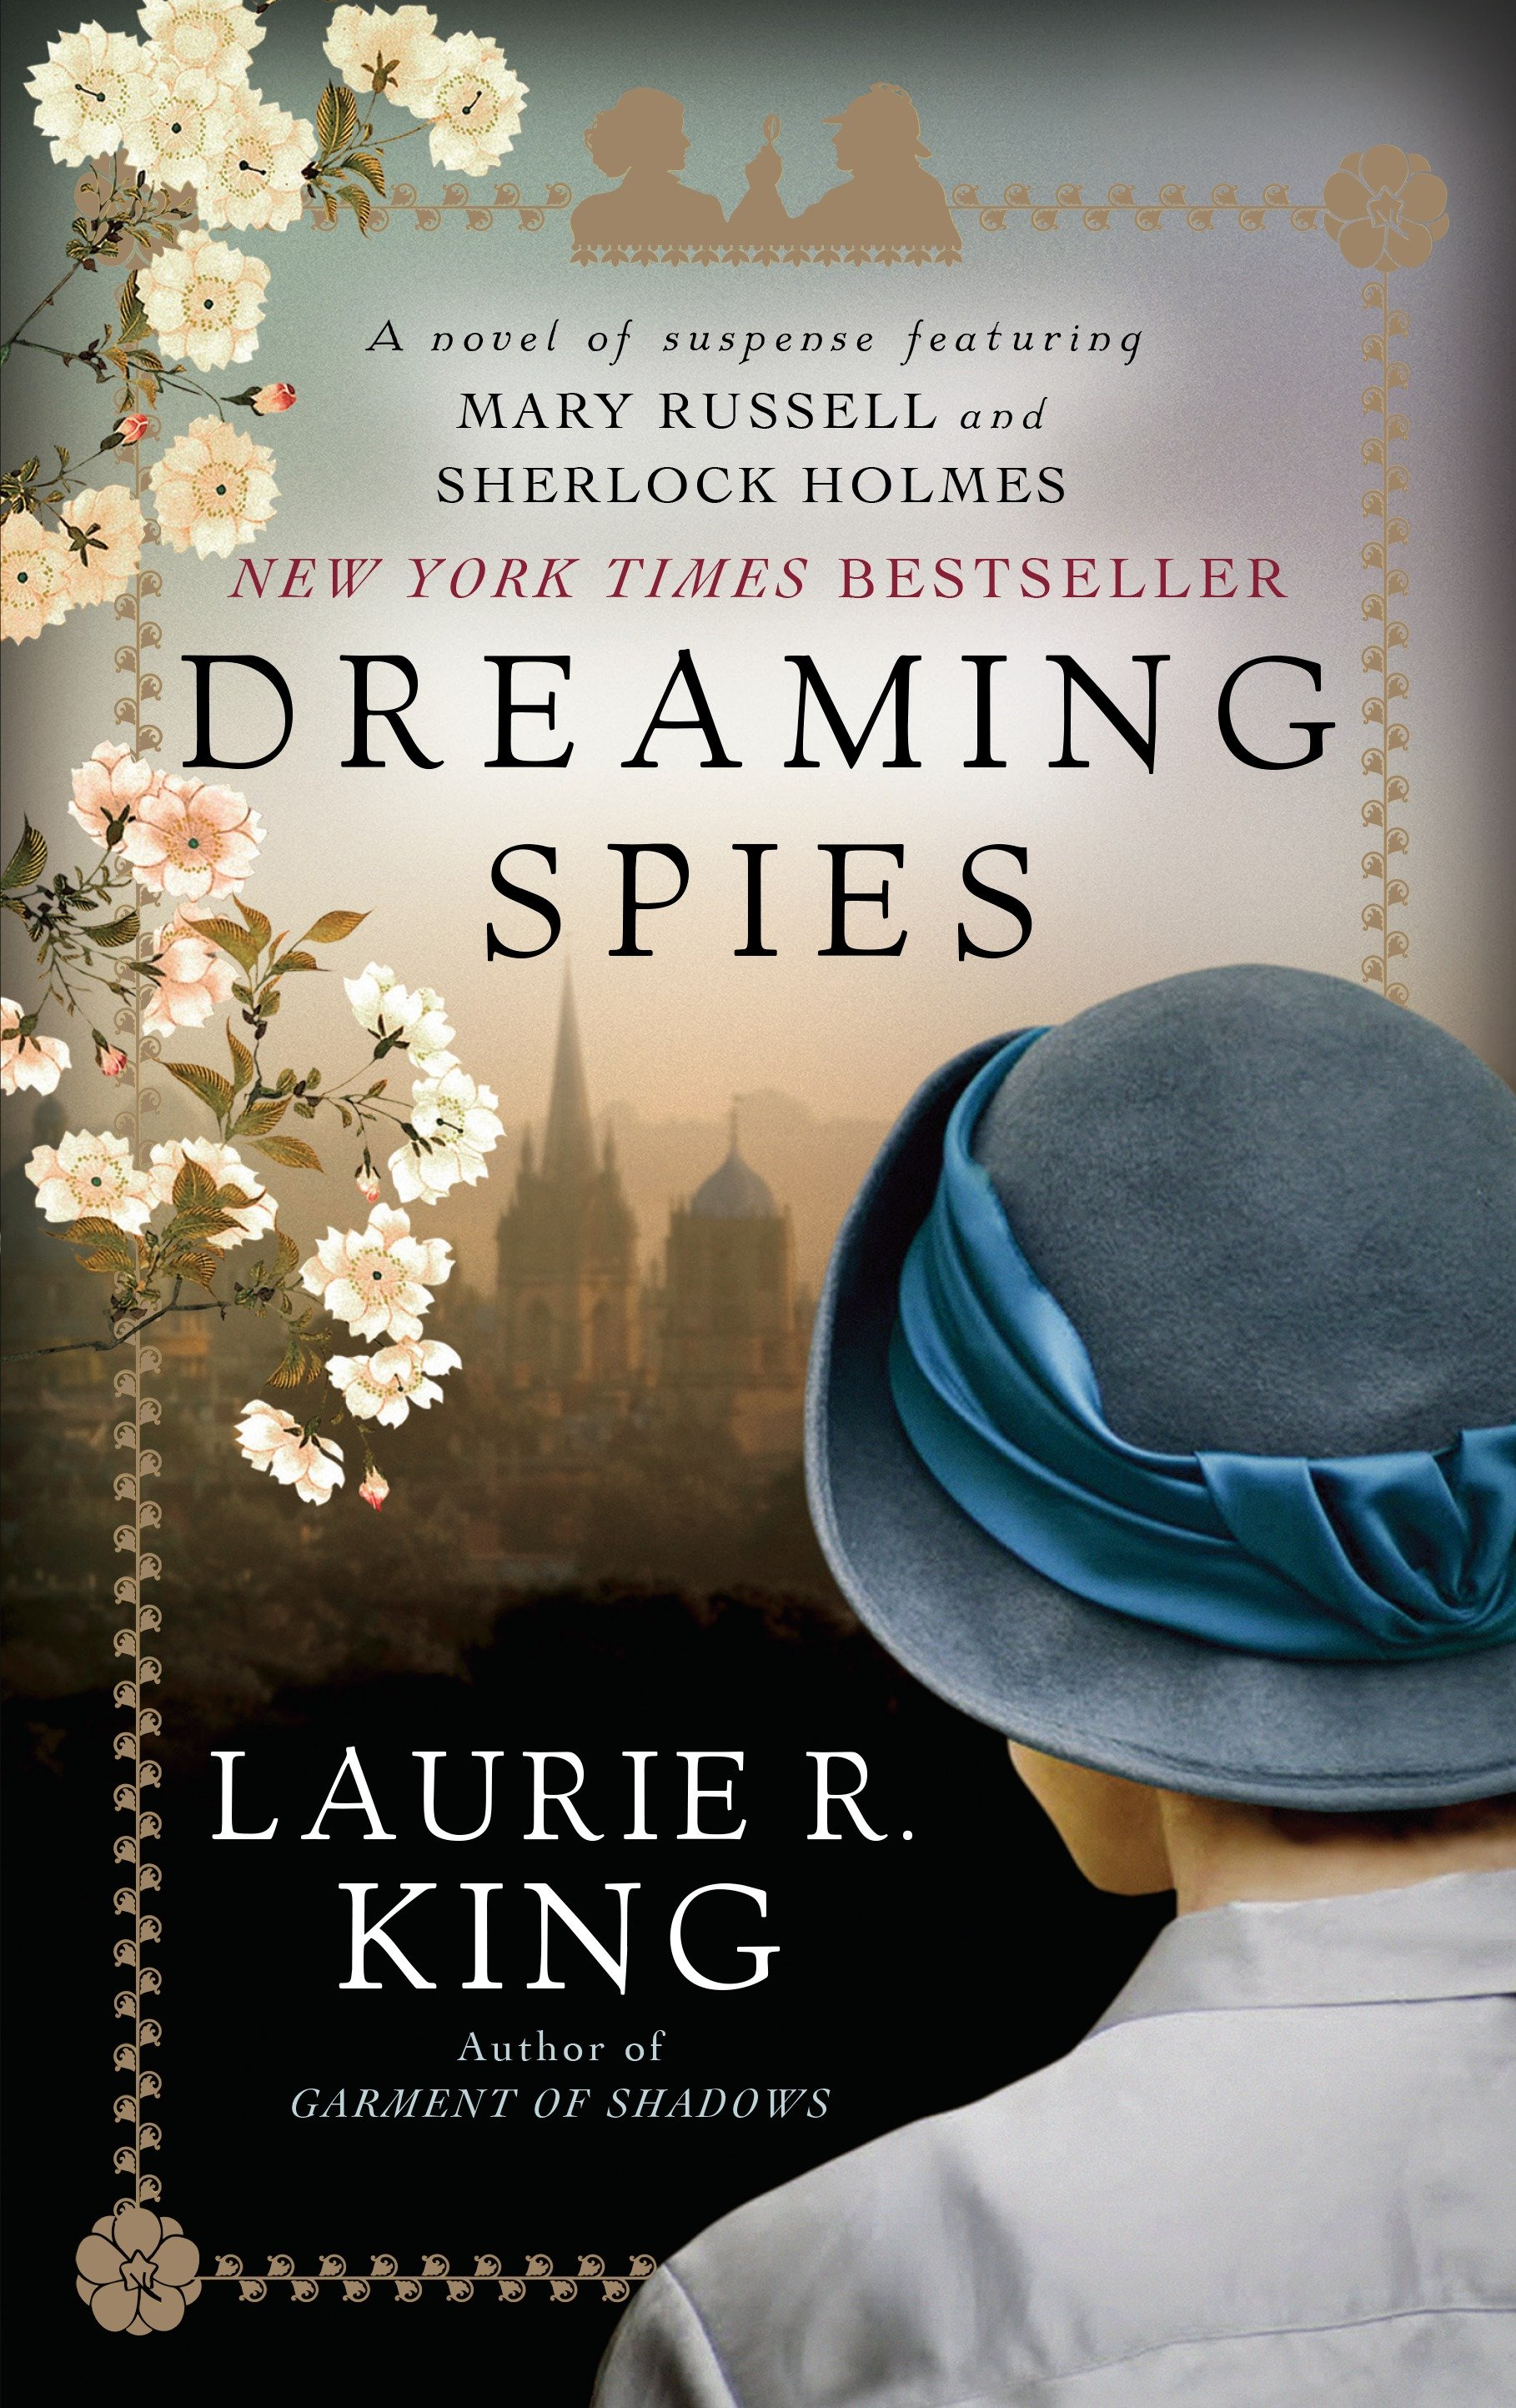 Dreaming spies cover image